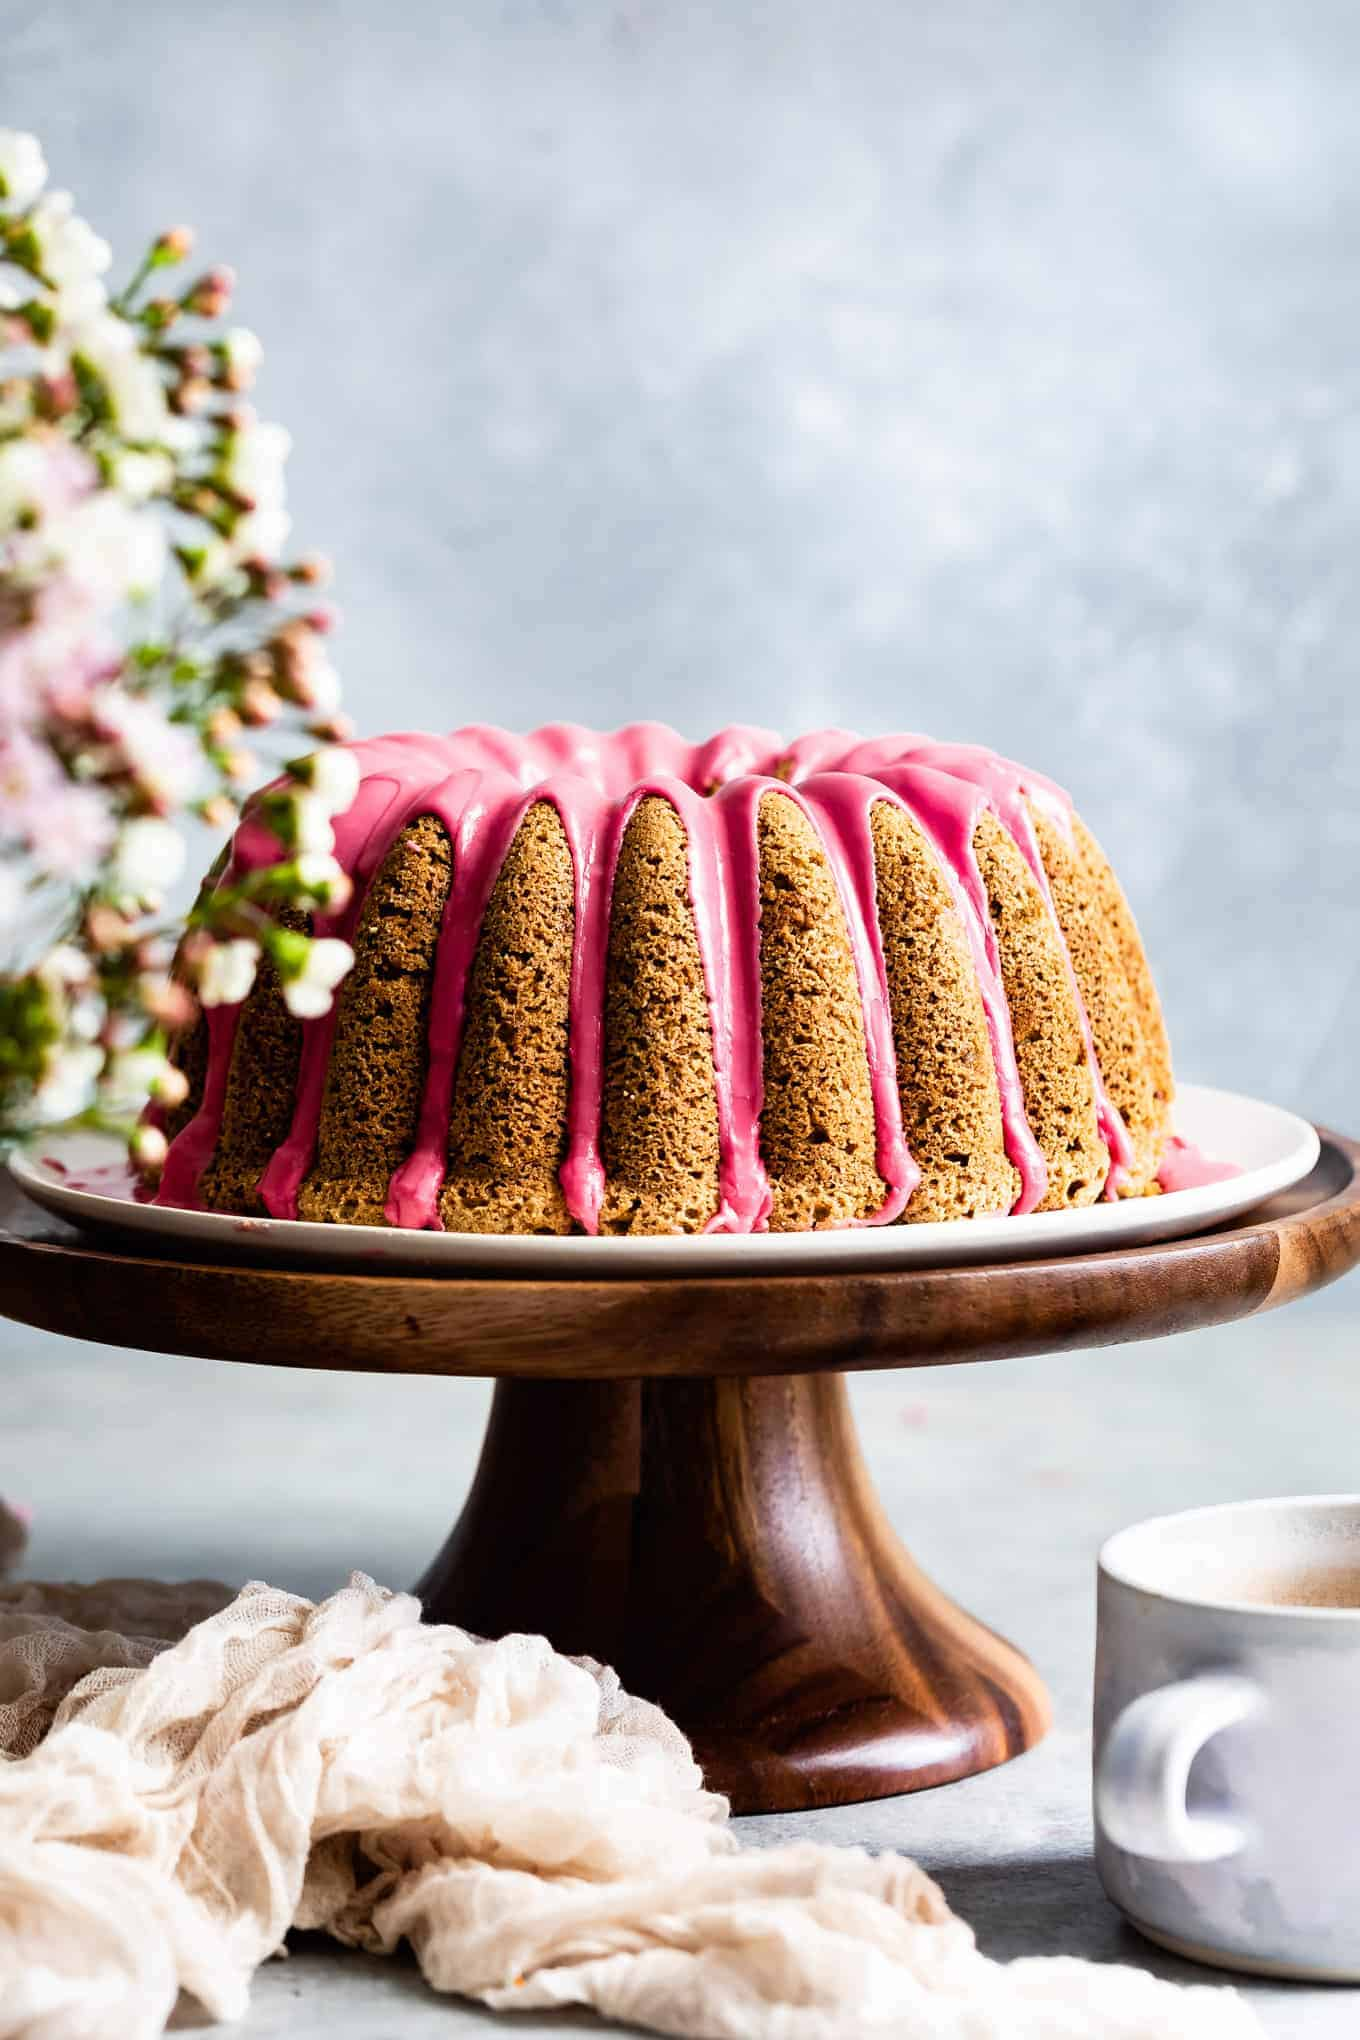 Earl Grey Gluten-Free Bundt Cake with Blood Orange Icing